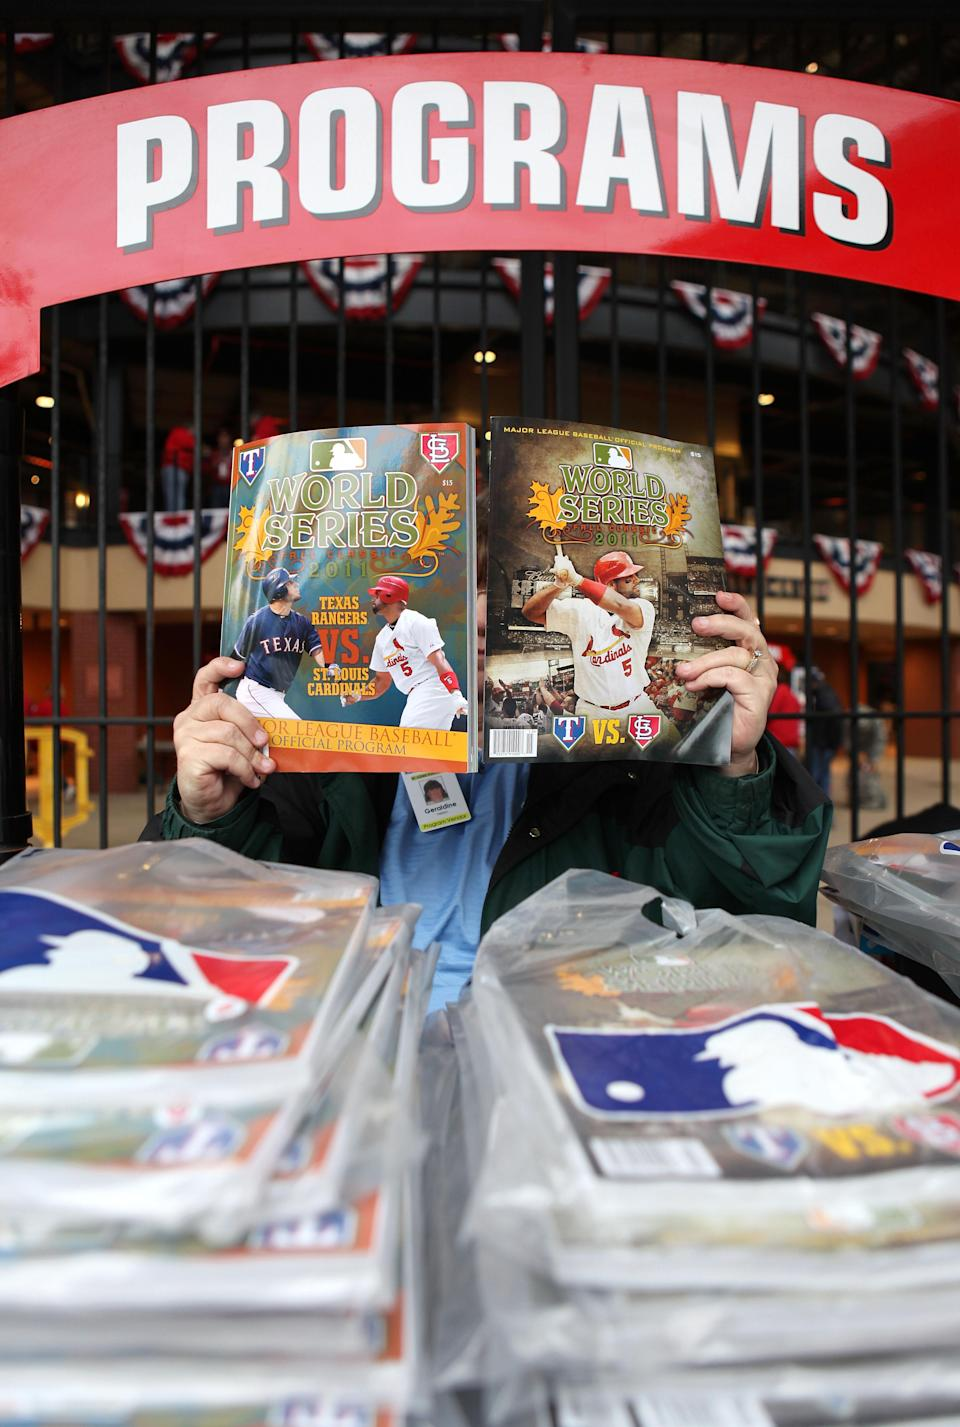 ST LOUIS, MO - OCTOBER 19: Game programs are for sale before Game One of the MLB World Series between the Texas Rangers and the St. Louis Cardinals at Busch Stadium on October 19, 2011 in St Louis, Missouri. (Photo by Jamie Squire/Getty Images)